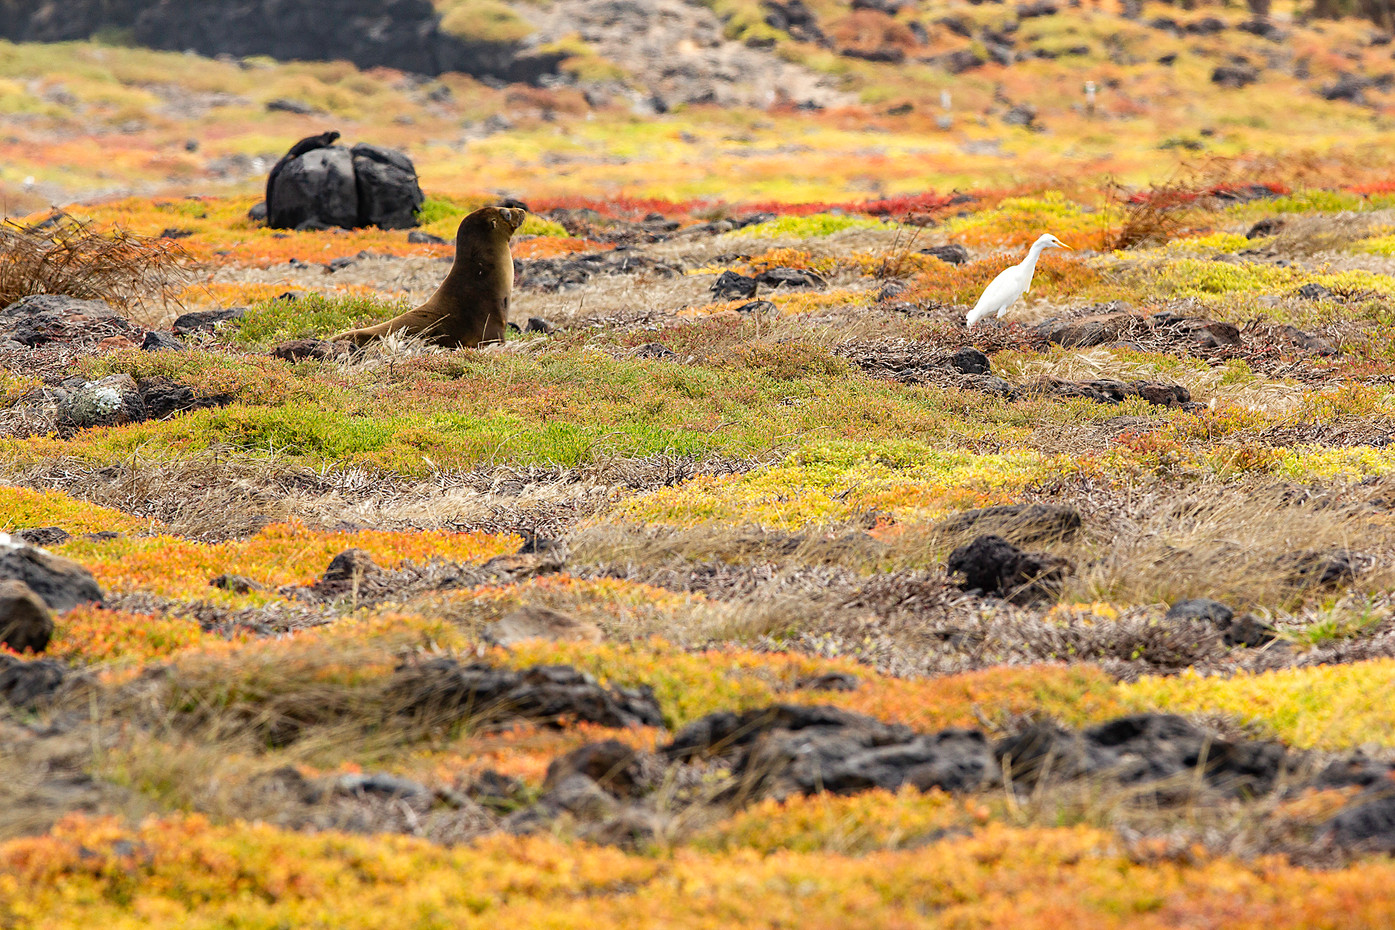 Marine Iguana, sea lion & egret in the Galapagos, Equador